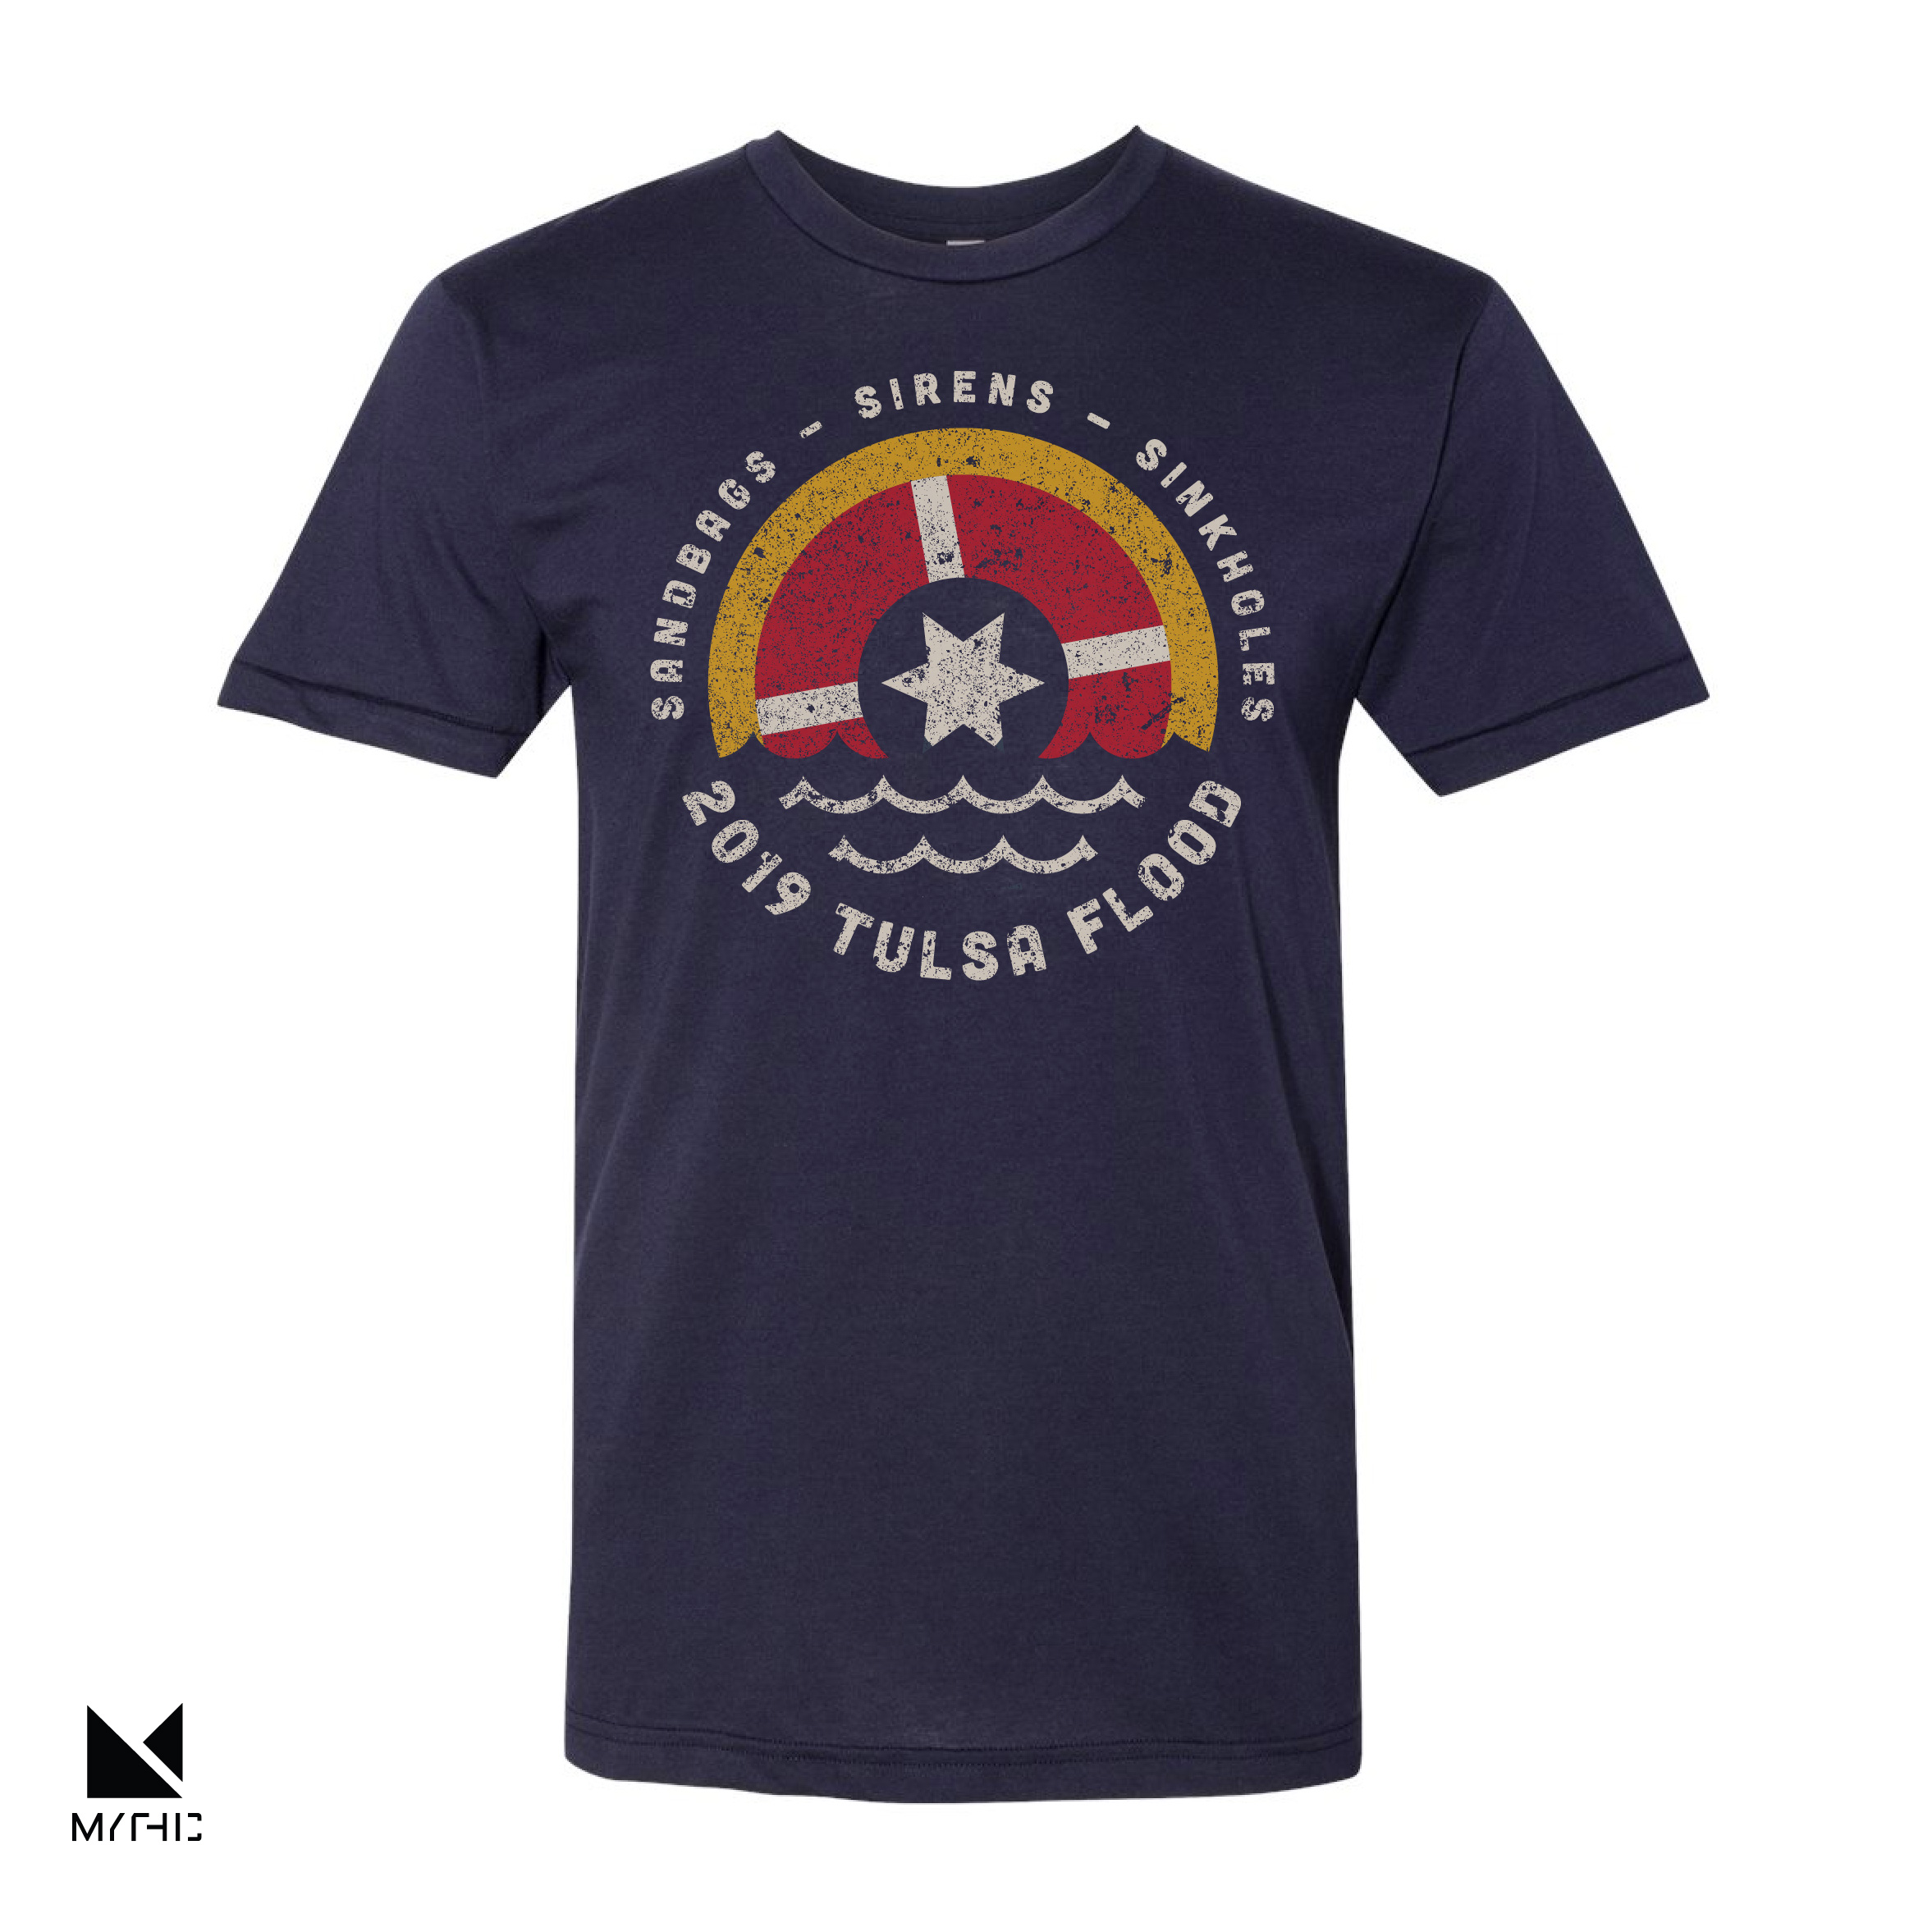 Tulsa Flood T-Shirt